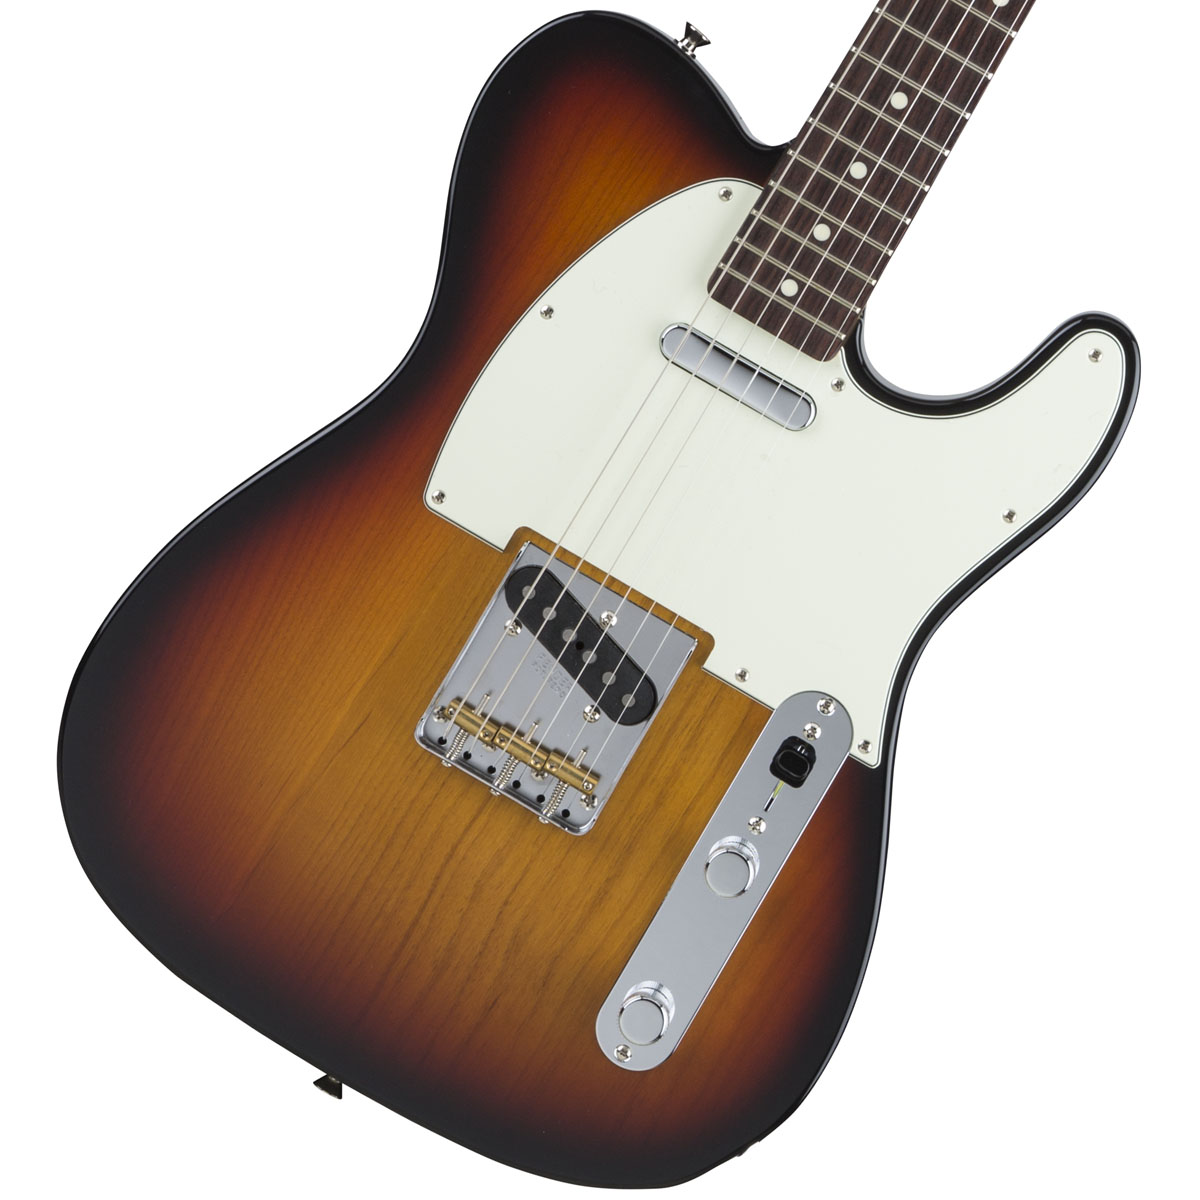 Fender / Made in Japan Hybrid 60s Telecaster 3 Color Sunburst《カスタムショップのお手入れ用品を進呈/+671038200》